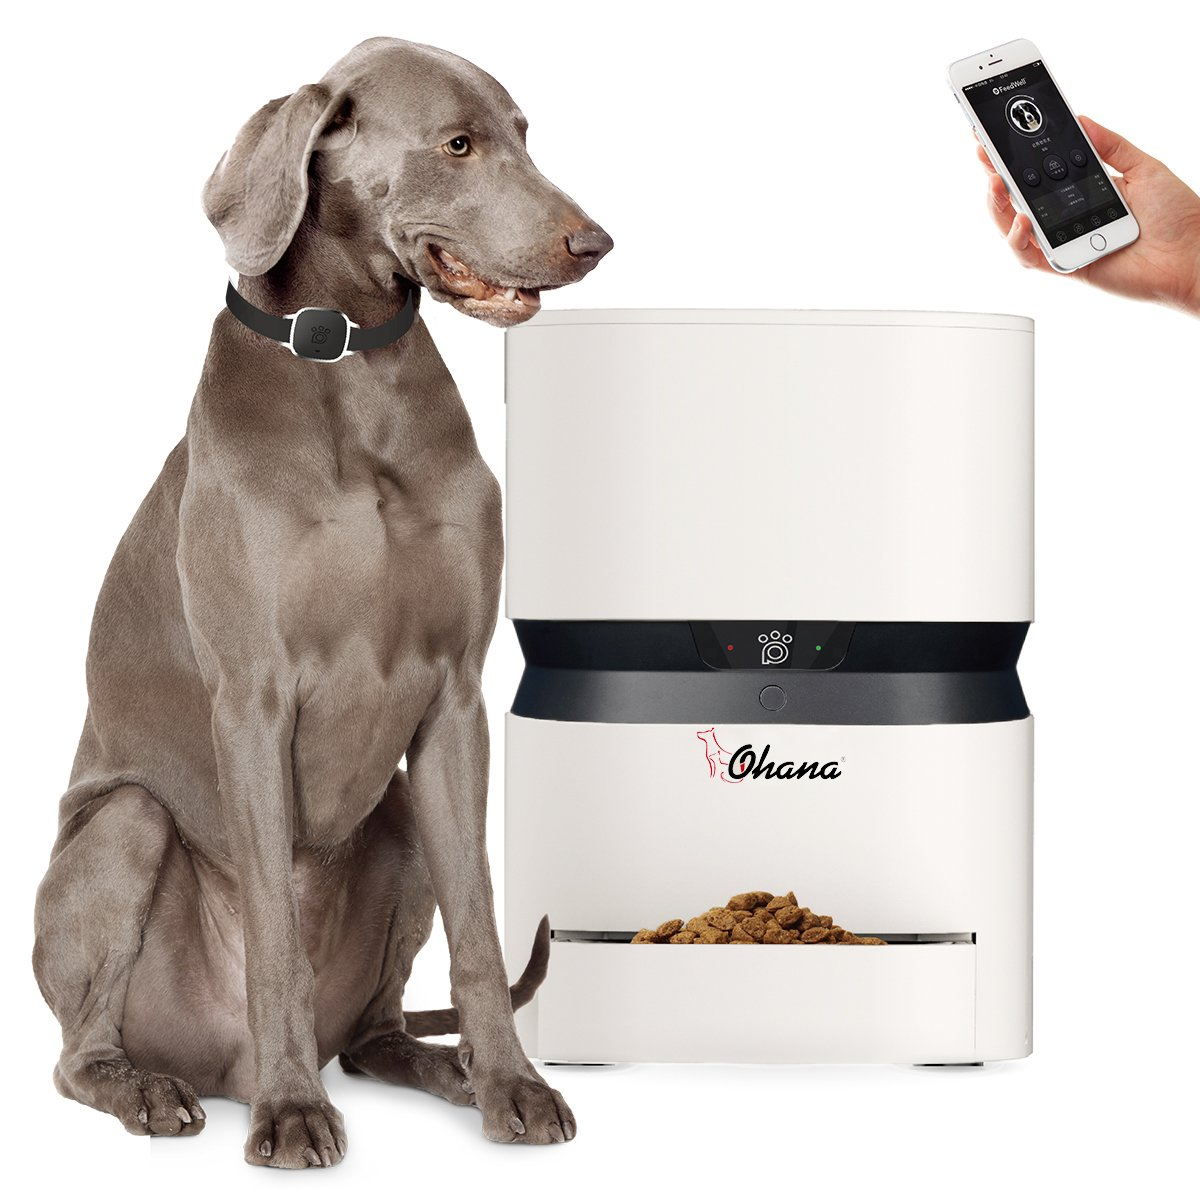 8L SmartFeeder,Ohana Automatic Food Dispenser for Cats and Dogs,Large Capacity with Voice Recorder and Timer Programmable